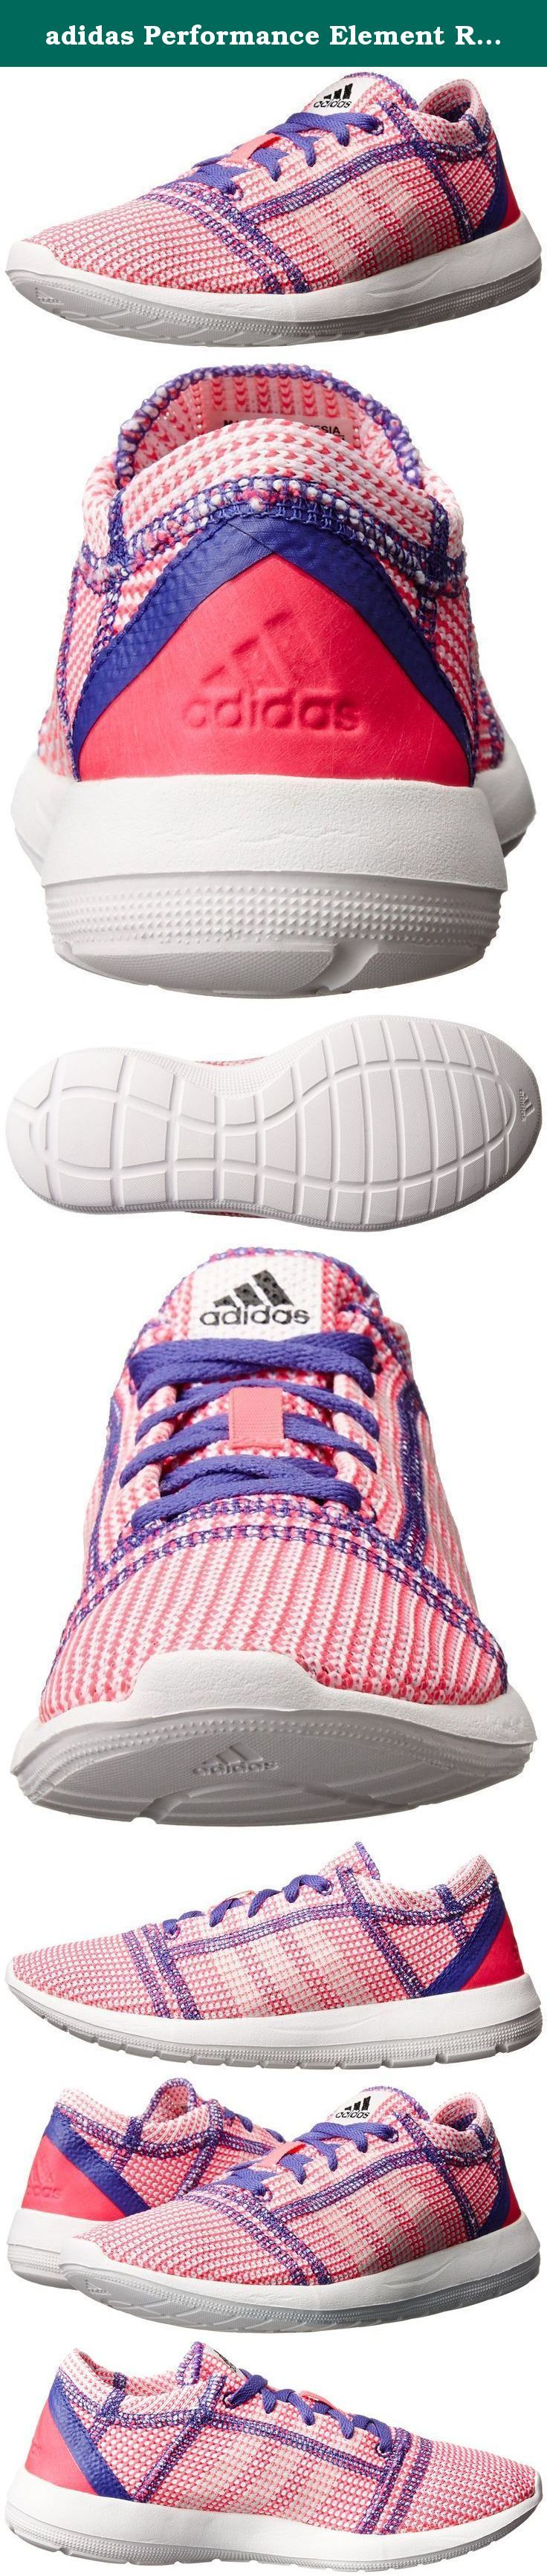 adidas Performance Element Refine Tricot J Running Shoe (Big Kid),Solar Pink/Running White/Power Purple F14,6 M US Big Kid. Sustainably made lightweight runner with integrated sockliner and full length Ethylene vinyl acetate midsole outsole. Tricot mesh for lightweight breathability. Compression Molded one piece ethylene vinyl acetate midsole outsole for lightweight barefoot feel. Non-marking outsole with outstanding traction both indoor and outdoor.